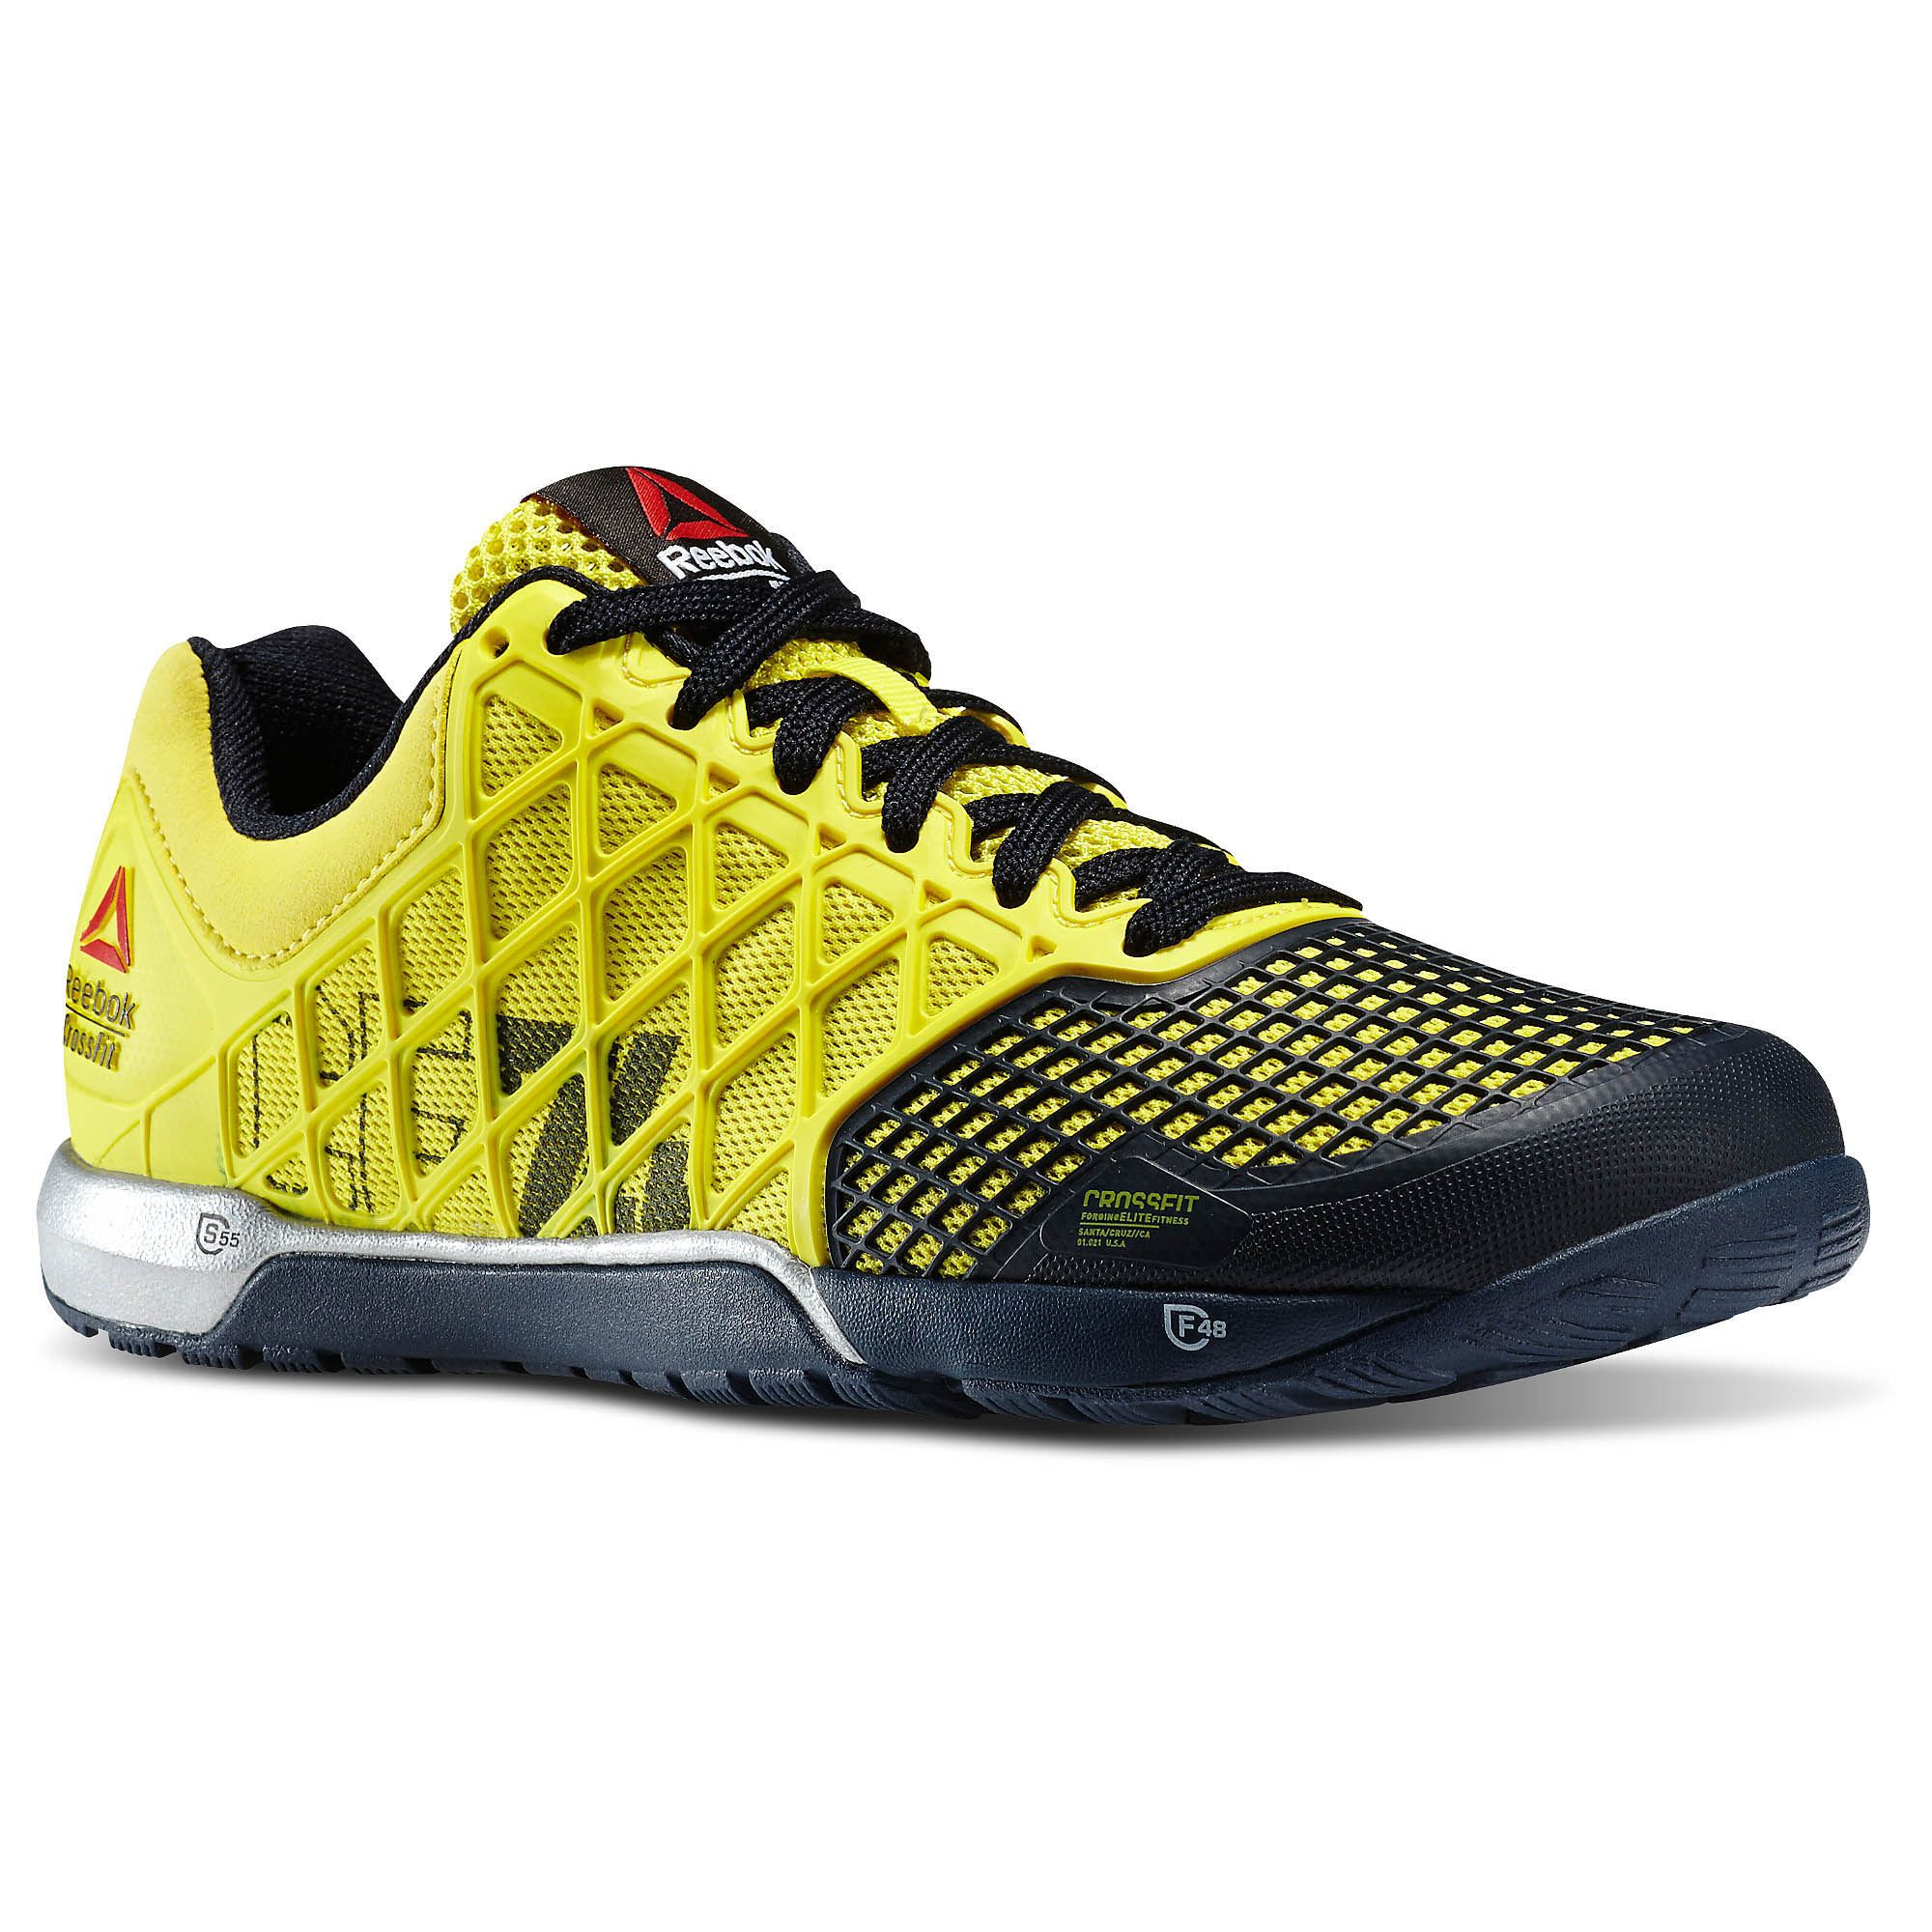 Reebok-running-shoes-and-sportsshoes-for-women (20)